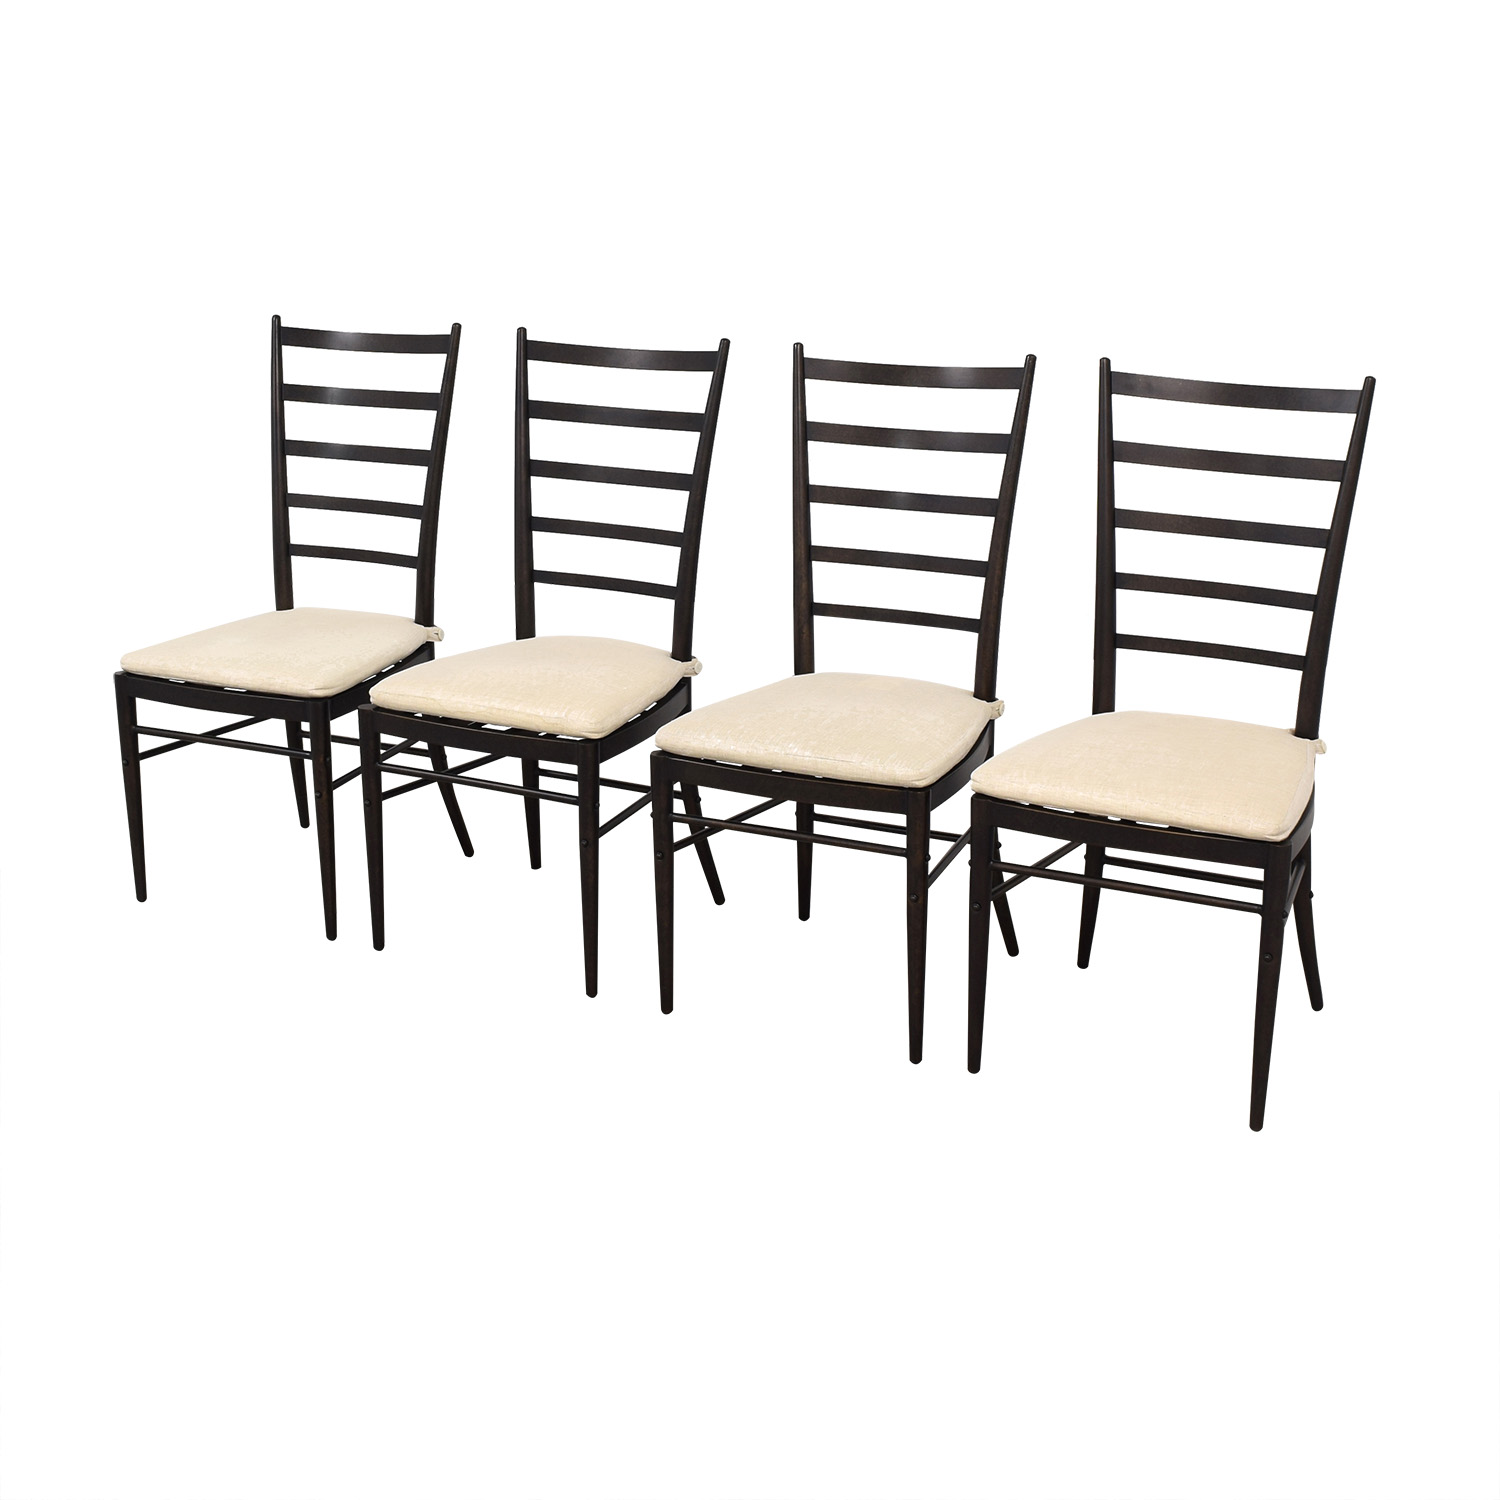 Crate & Barrel Crate & Barrel Ladder Back Dining Chairs Chairs